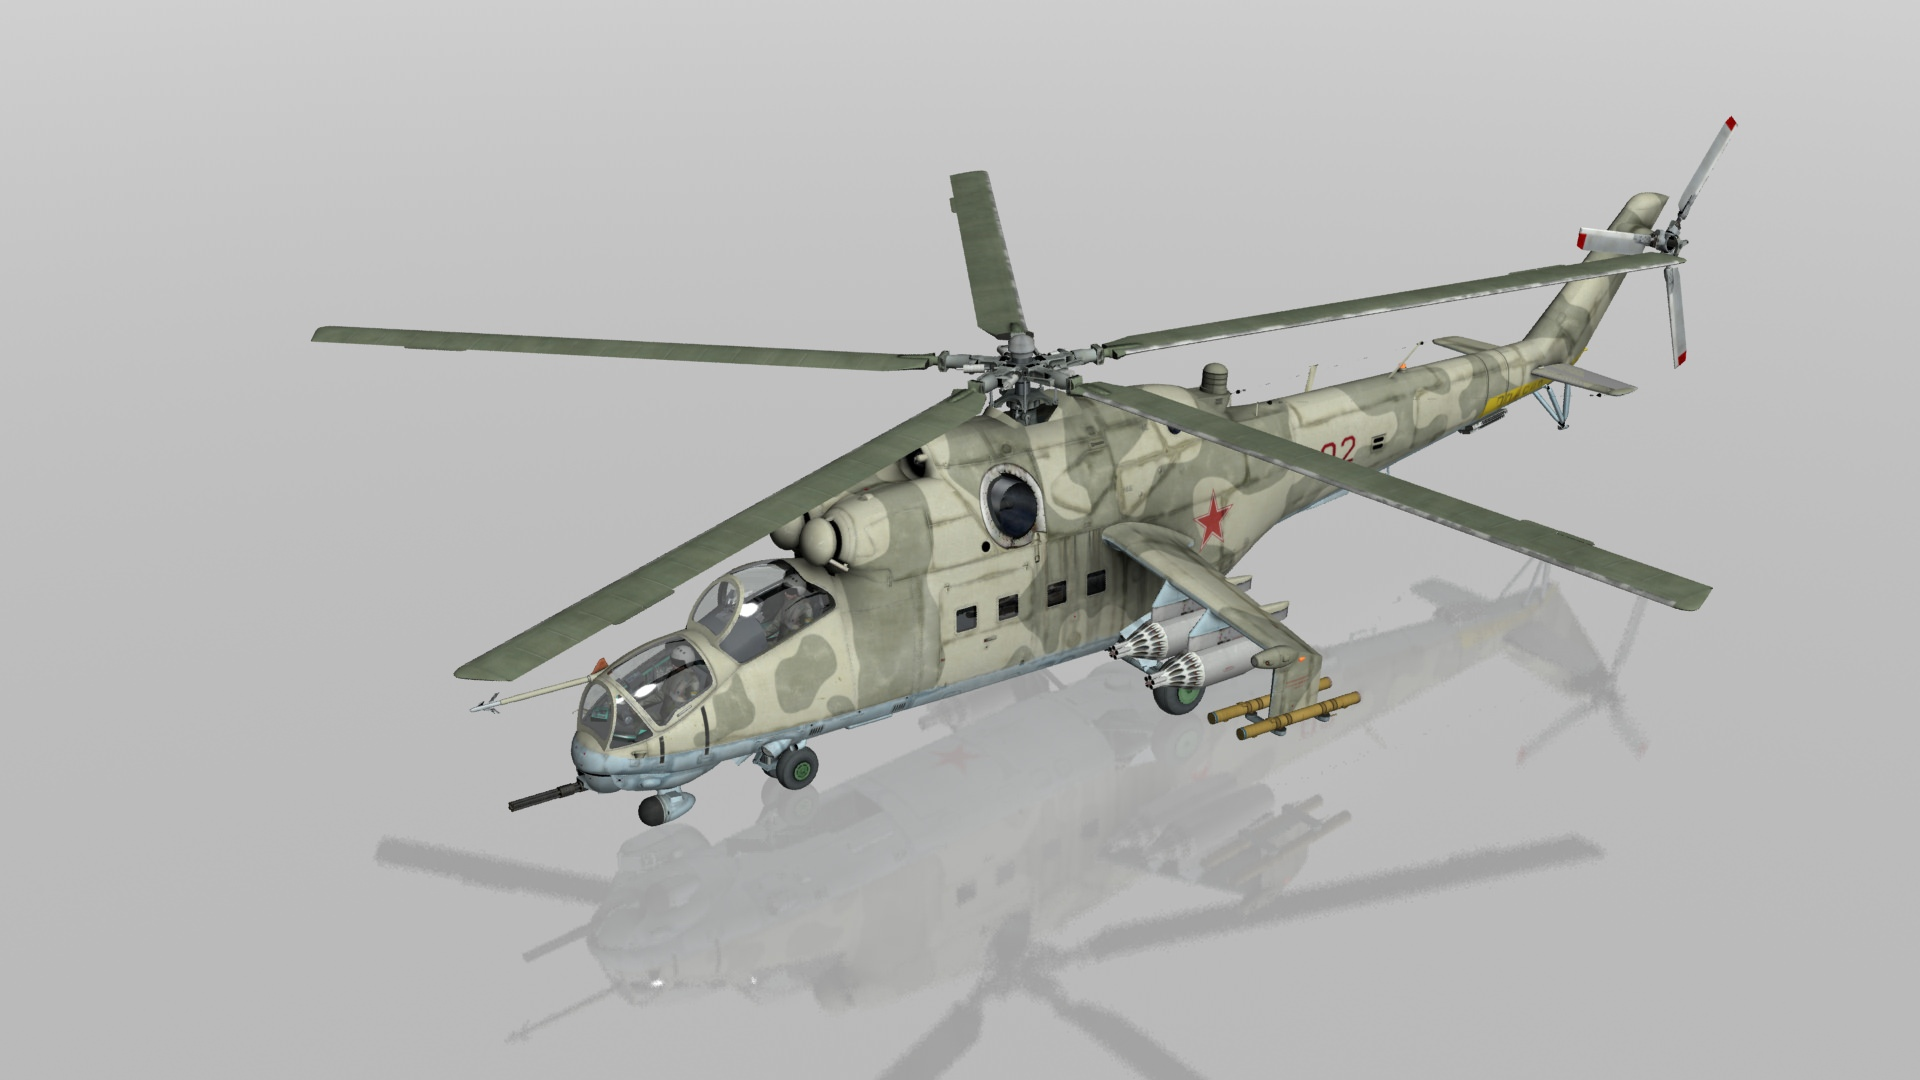 mi 24 hind helicopter gunship with Mi24 Hind Russian Helicopter Gunship on Mil mi 24 together with Indian Air Forces Mil Mi 35 Hind E in addition  additionally South Africas Ate Super Hind Mi 35 additionally .